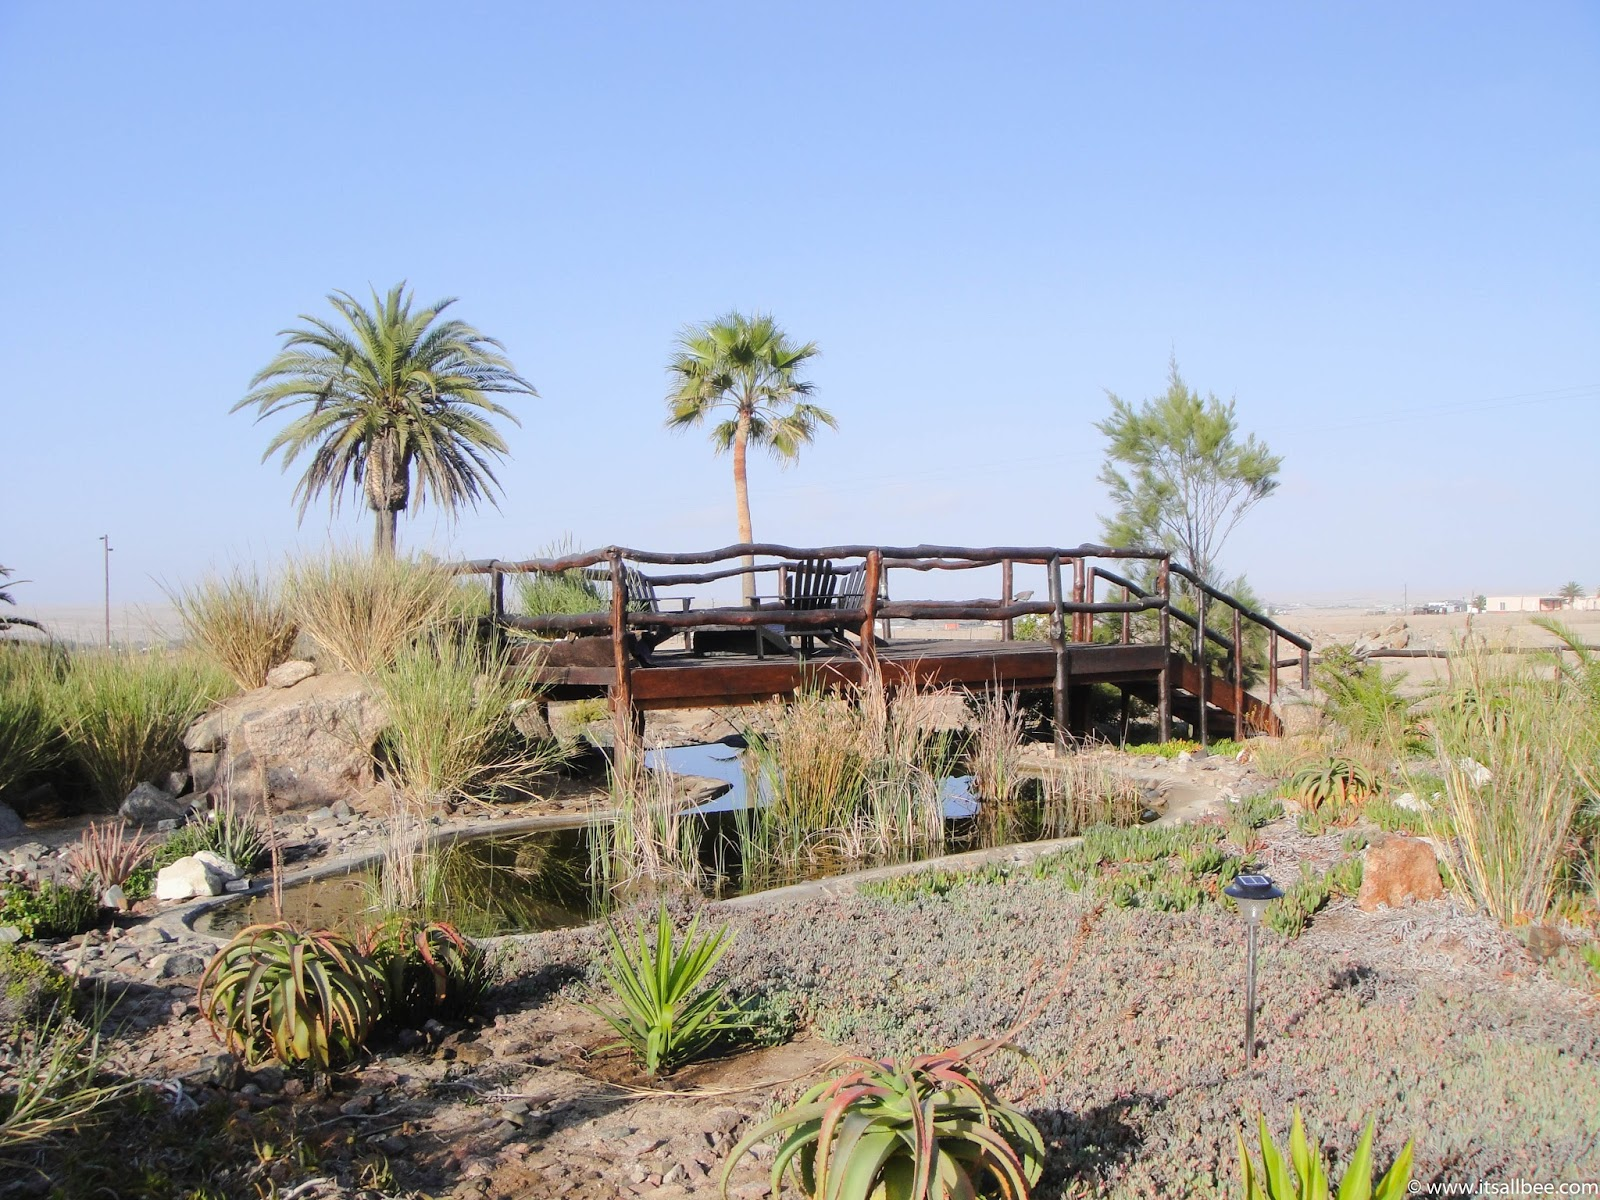 cheap accommodation in swakopmund self catering accommodation near swakopmund | swakopmund budget accommodation